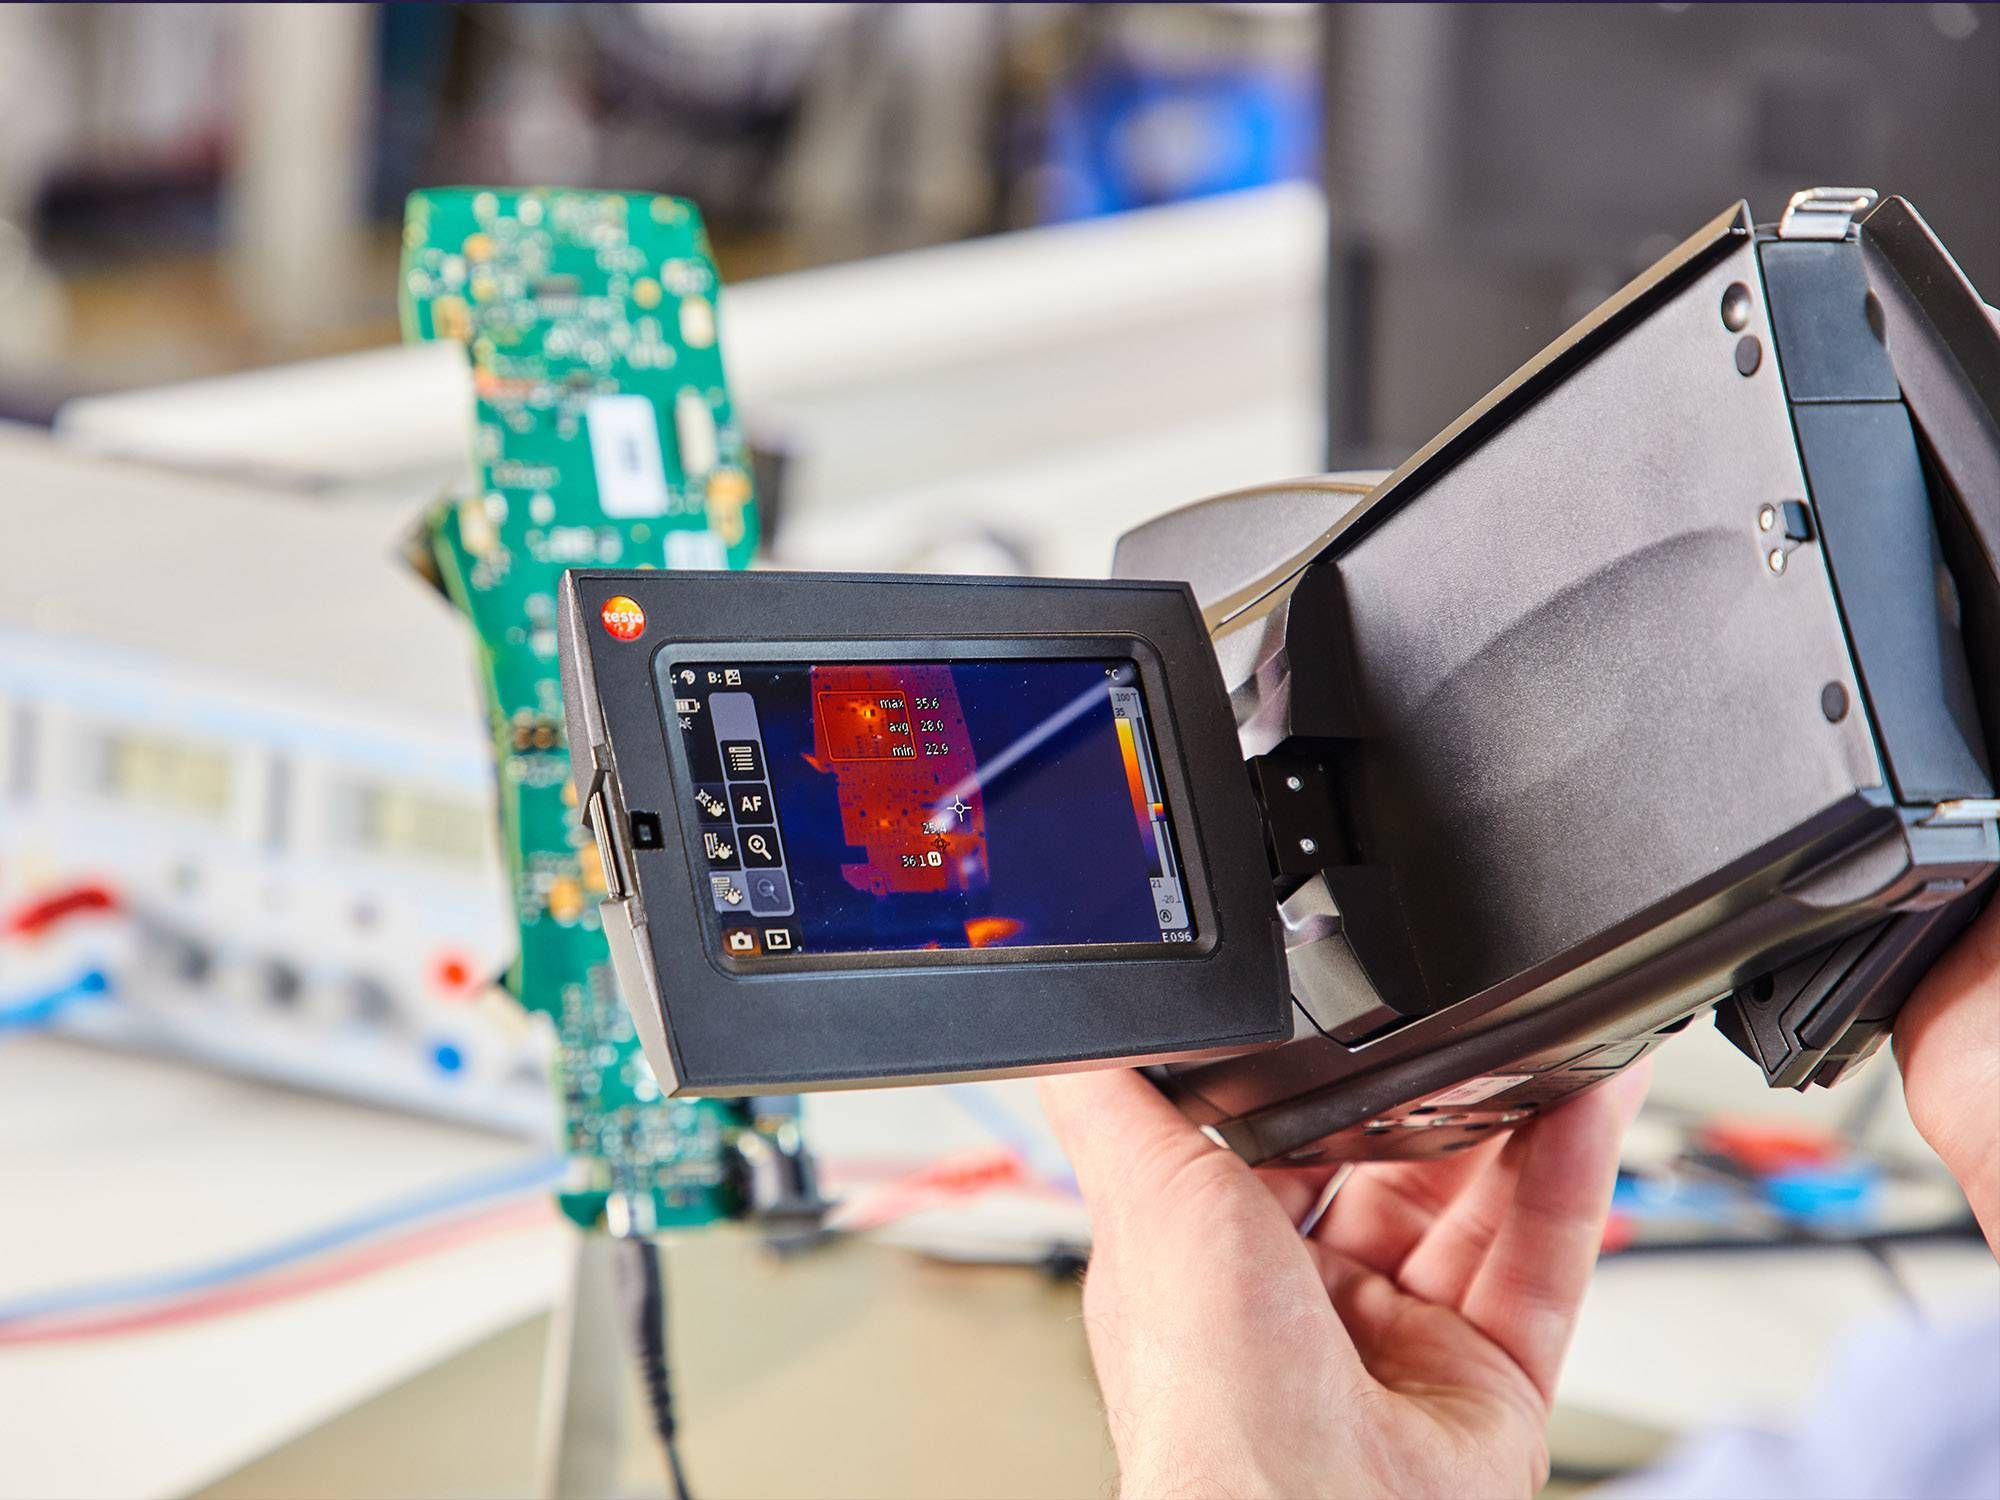 testo 890 thermal imager and circuit board